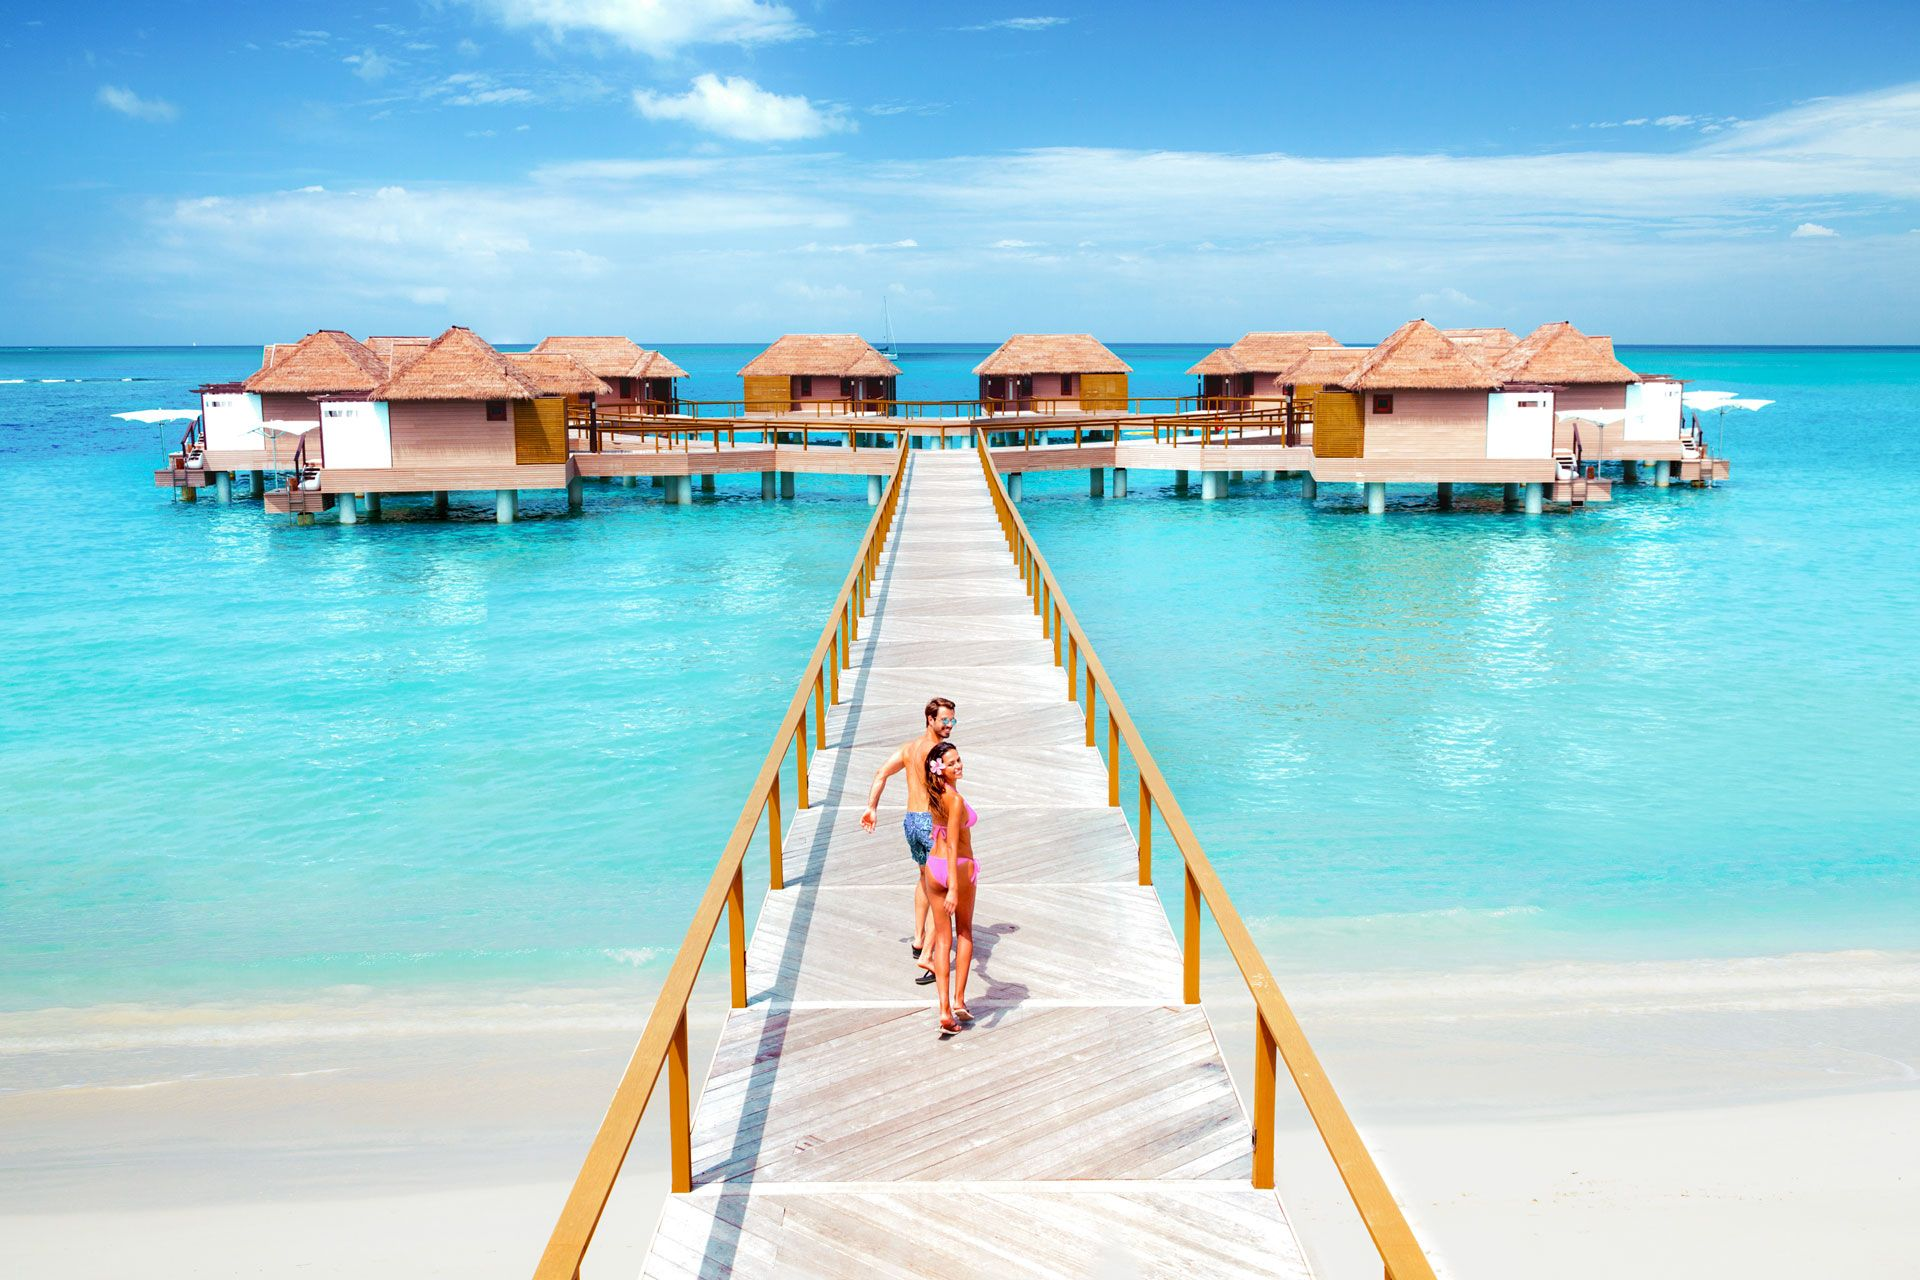 Couple at Sandals overwater bungalows